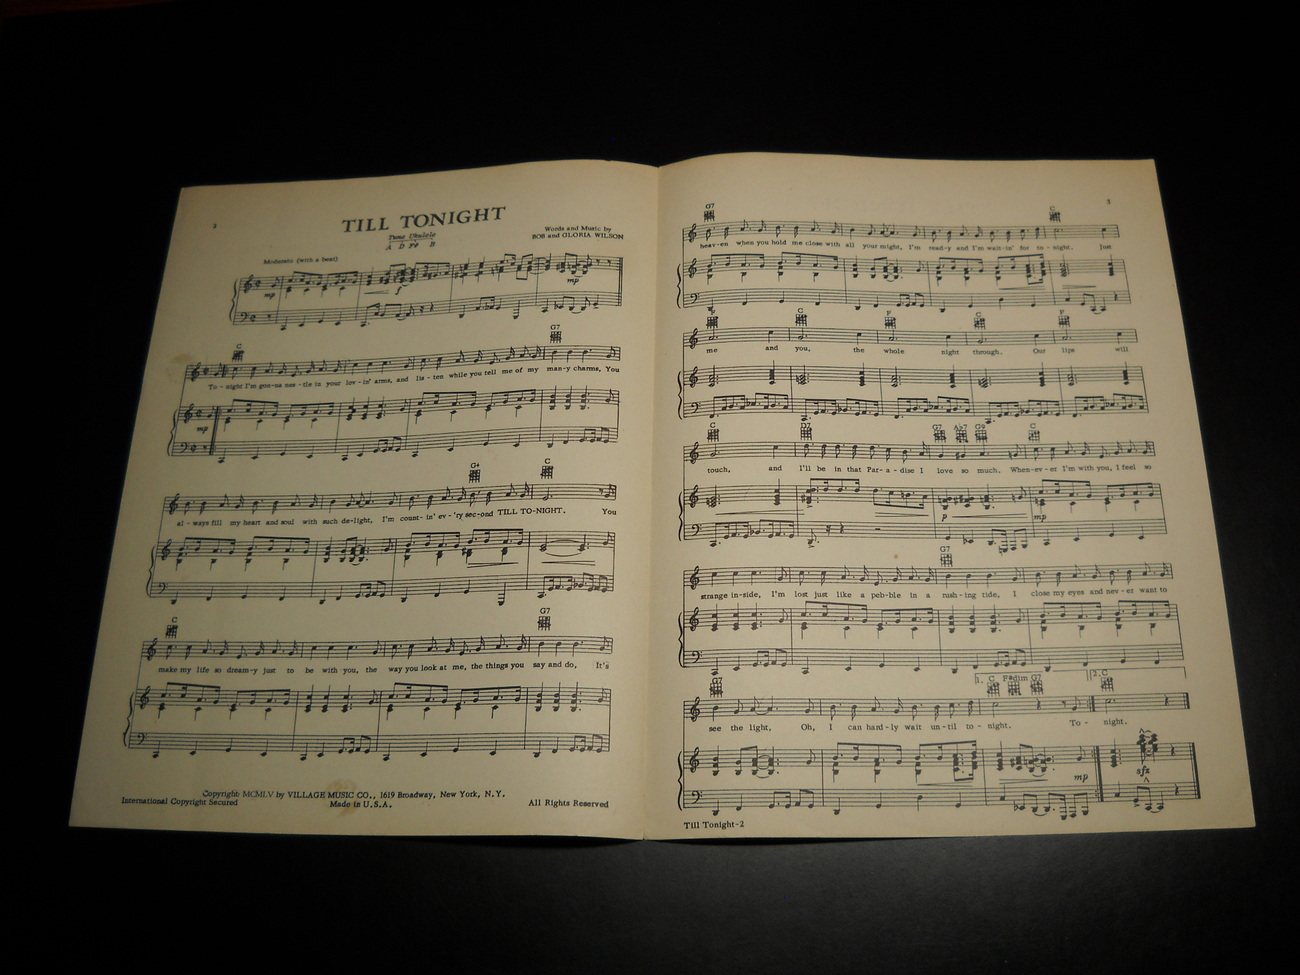 Sheet_music_till_tonight_dee_clifford_bob_gloria_wilson_1940_village_05